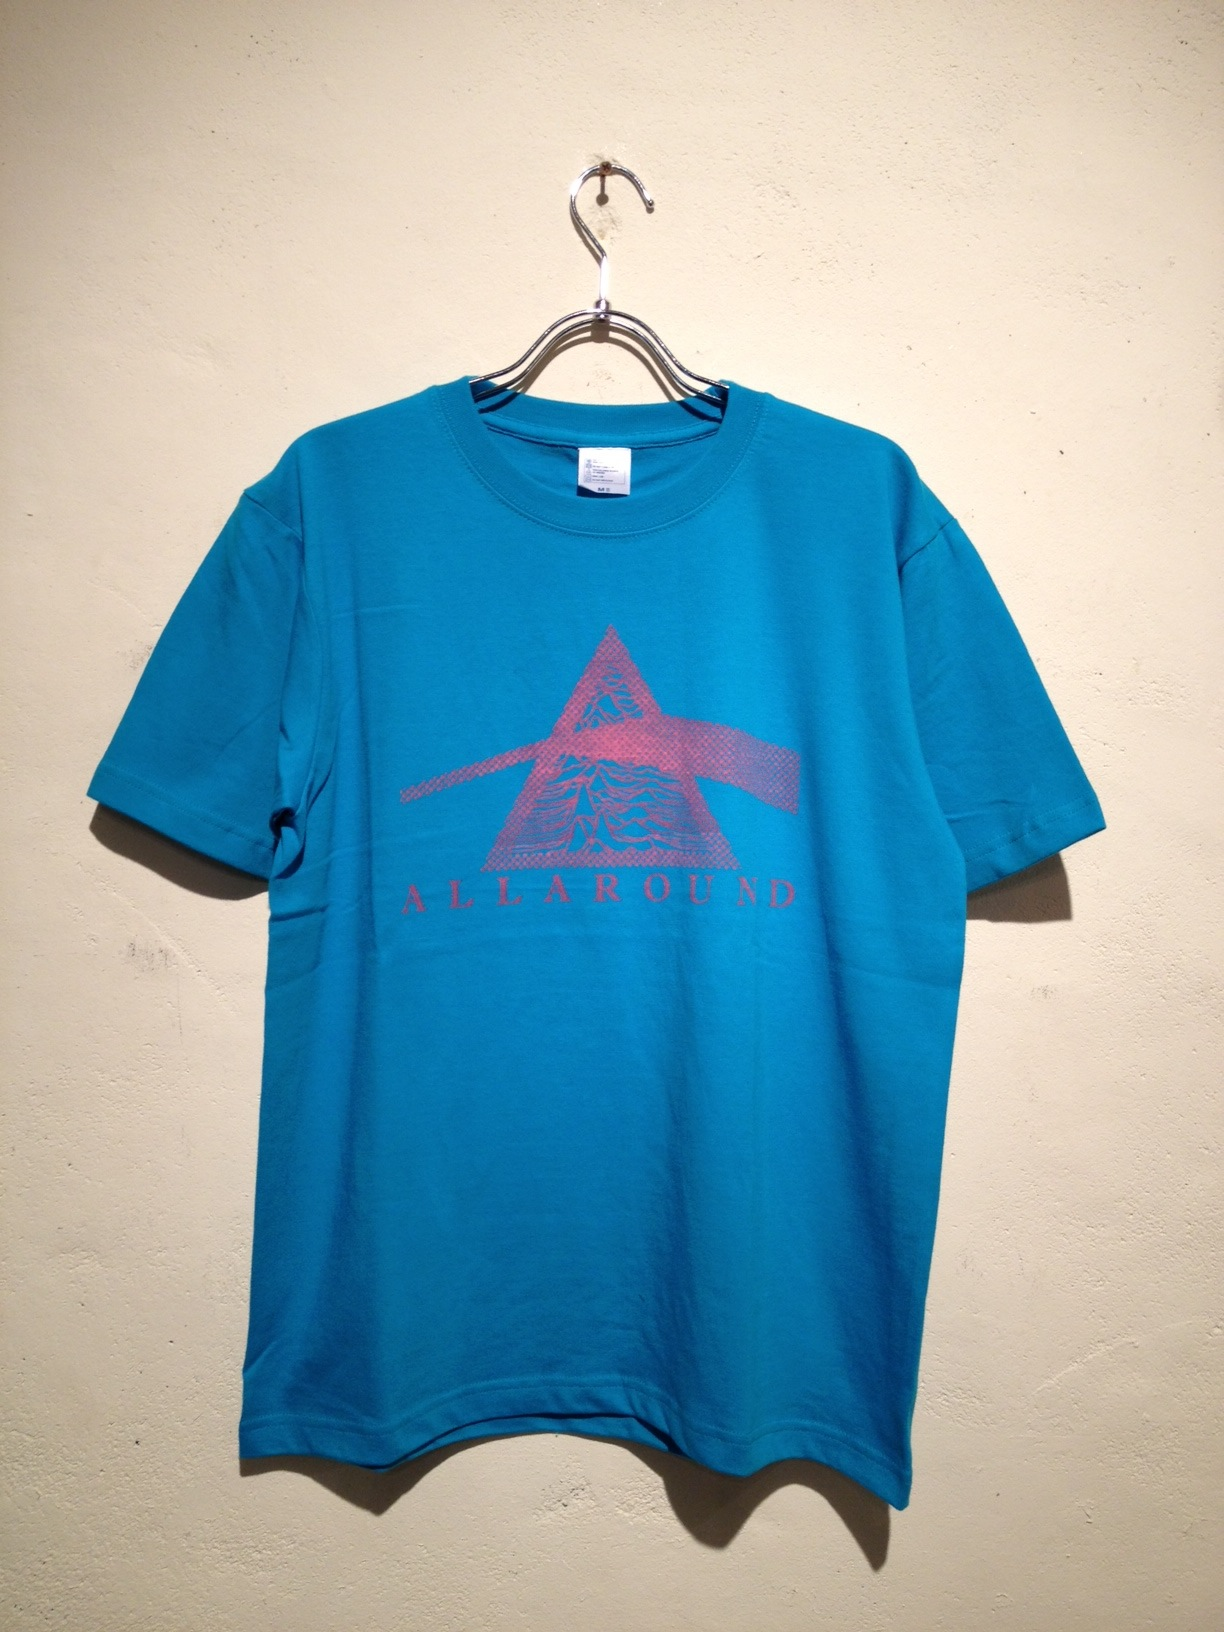 New icon S/S Tee(color version)_f0126931_17161661.jpg